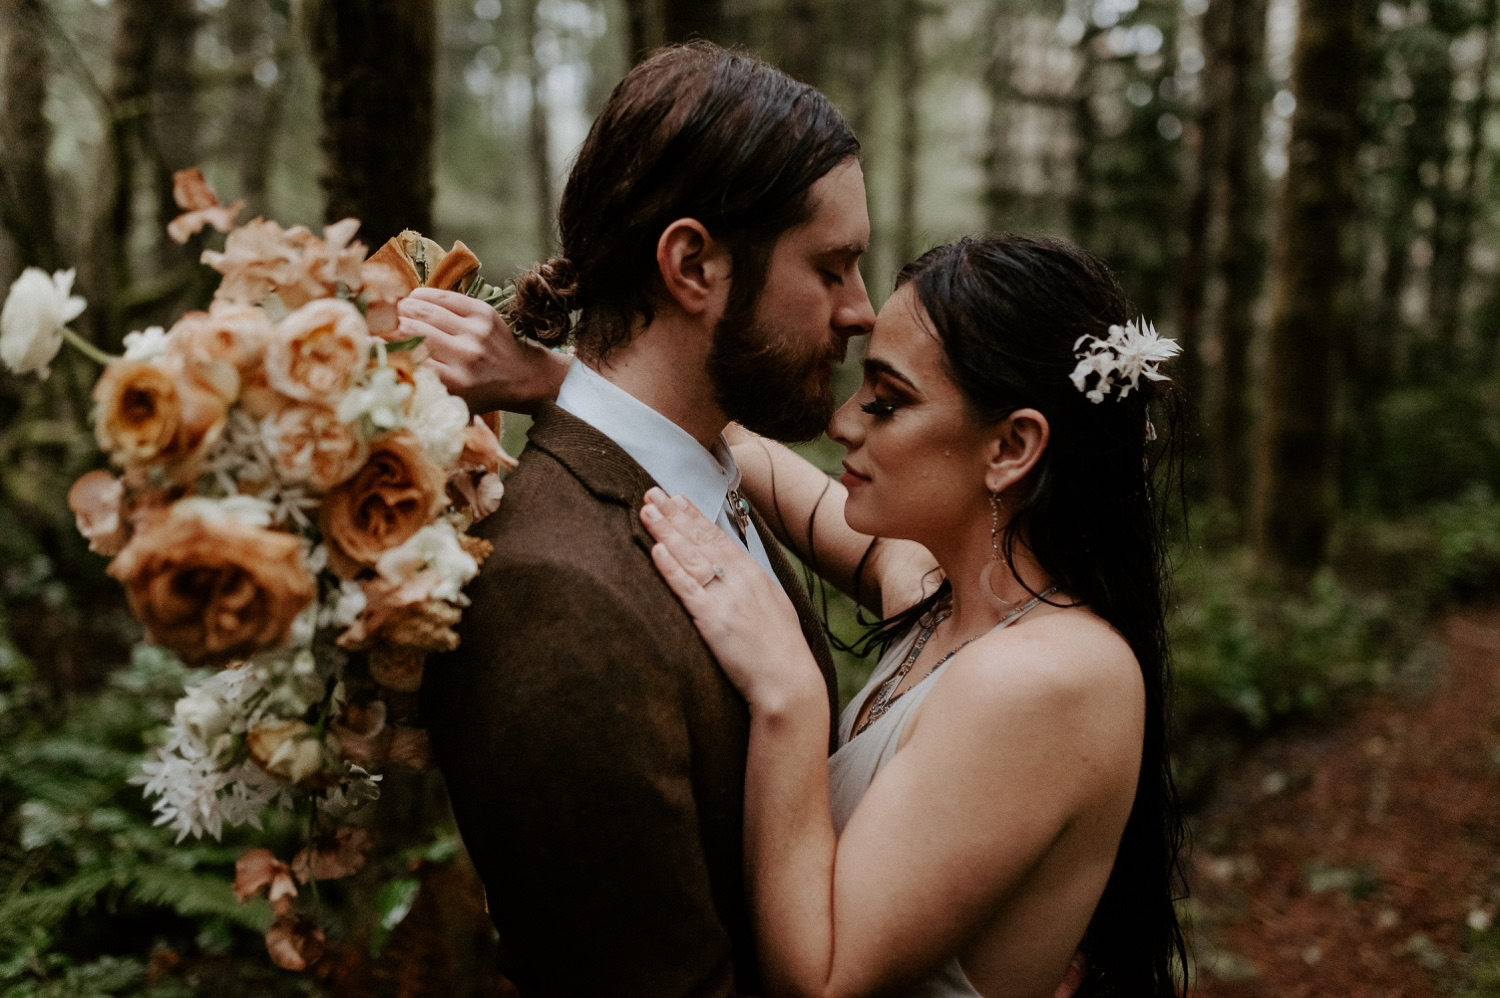 The Woodlands House Sandy Oregon Elopement Portland Elopement Photographer PNW Adventurous Elopement Anais Possamai Photography 038